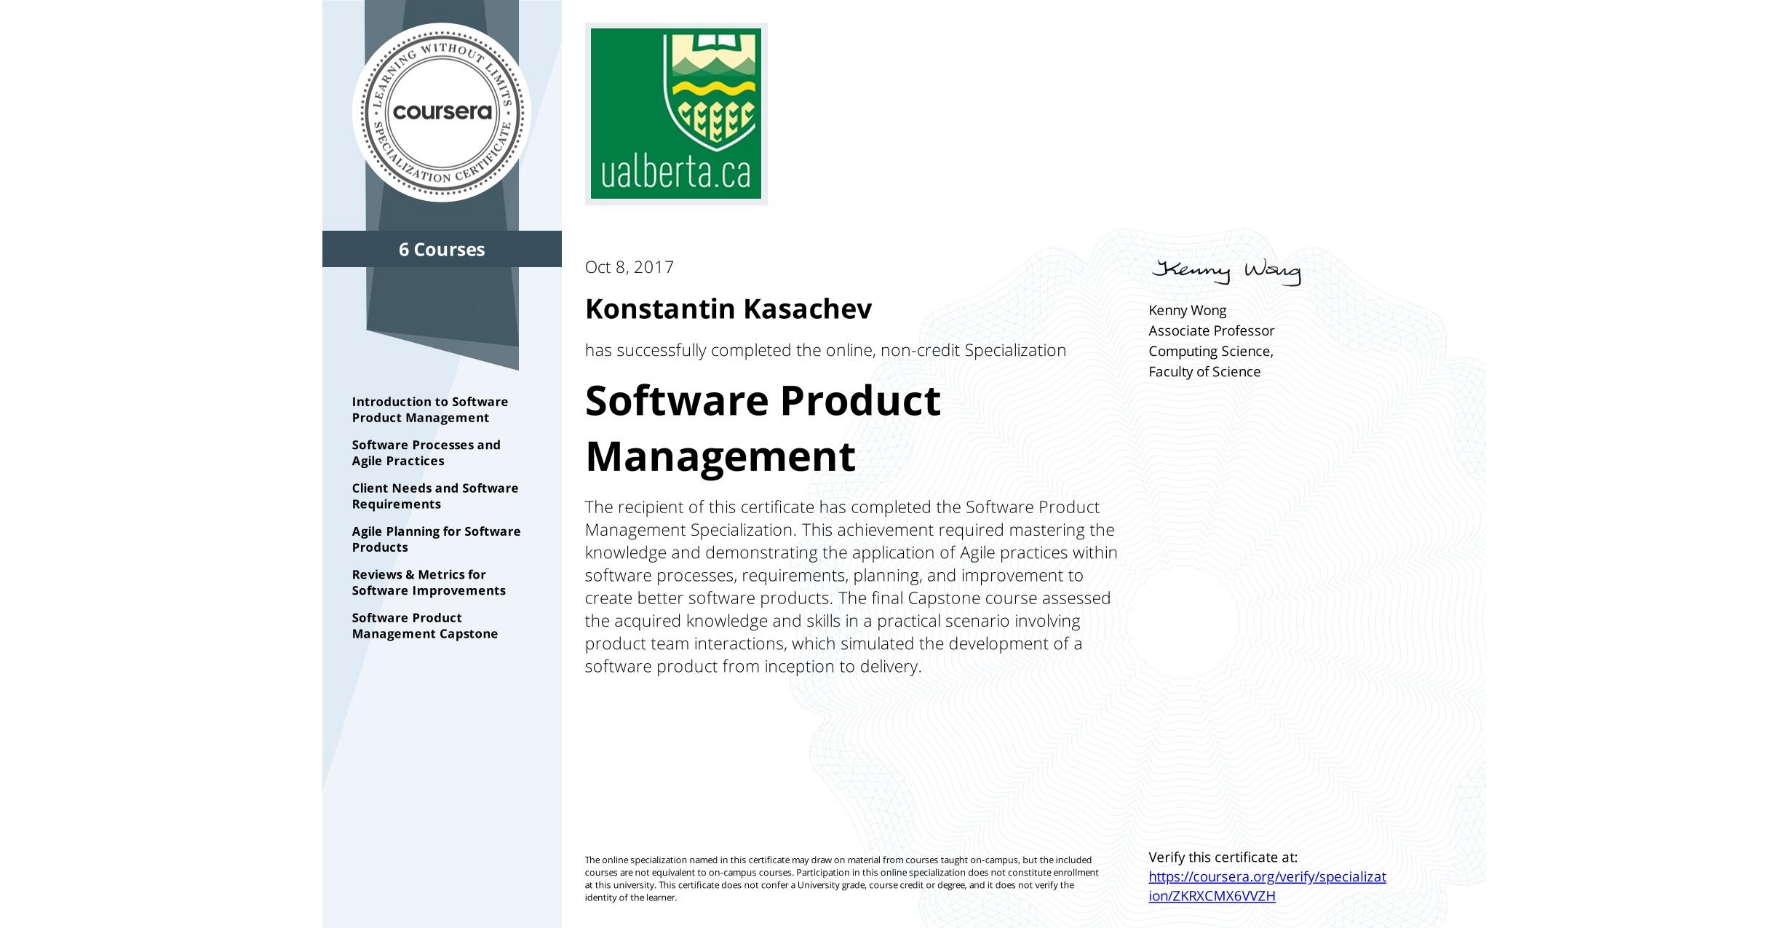 View certificate for Konstantin Kasachev, Software Product Management, offered through Coursera. The recipient of this certificate has completed the Software Product Management Specialization. This achievement required mastering the knowledge and demonstrating the application of Agile practices within software processes, requirements, planning, and improvement to create better software products. The final Capstone course assessed the acquired knowledge and skills in a practical scenario involving product team interactions, which simulated the development of a software product from inception to delivery.